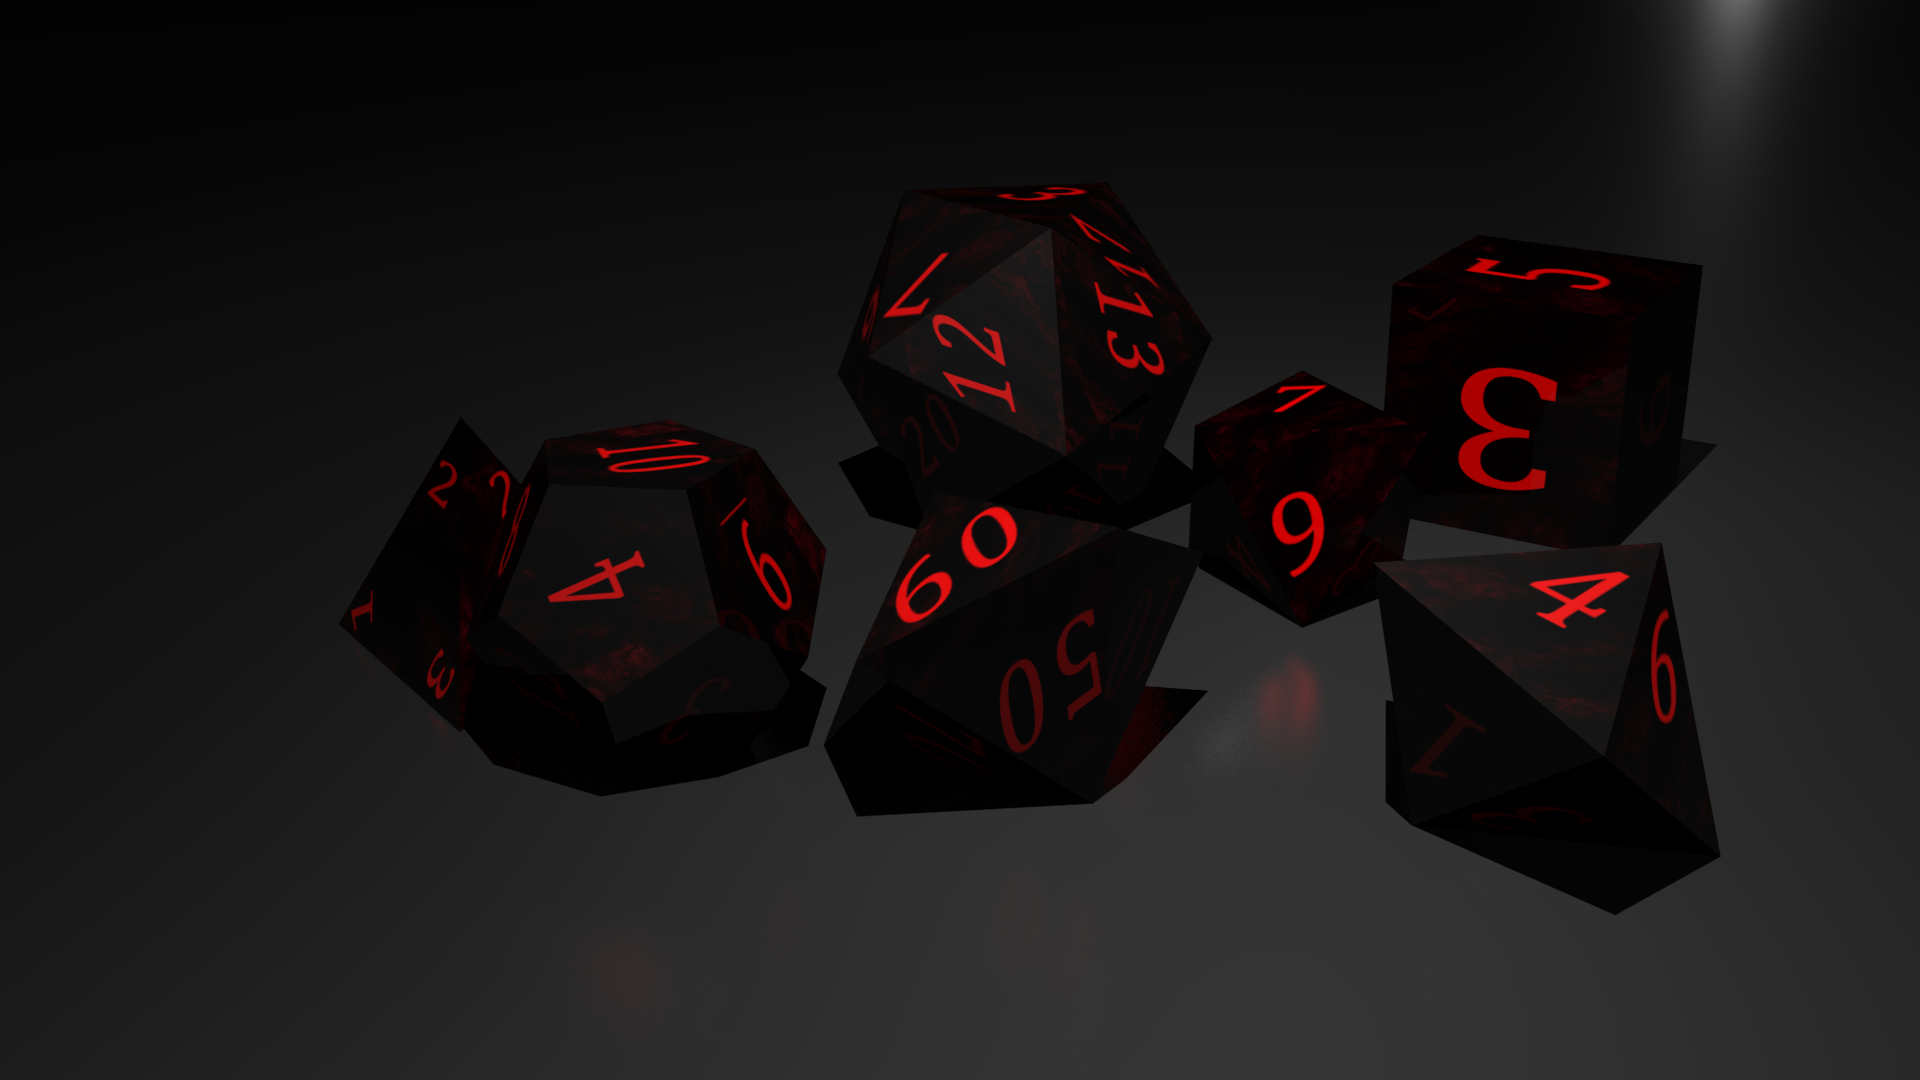 3d Dnd Dice Model Turbosquid 1315268